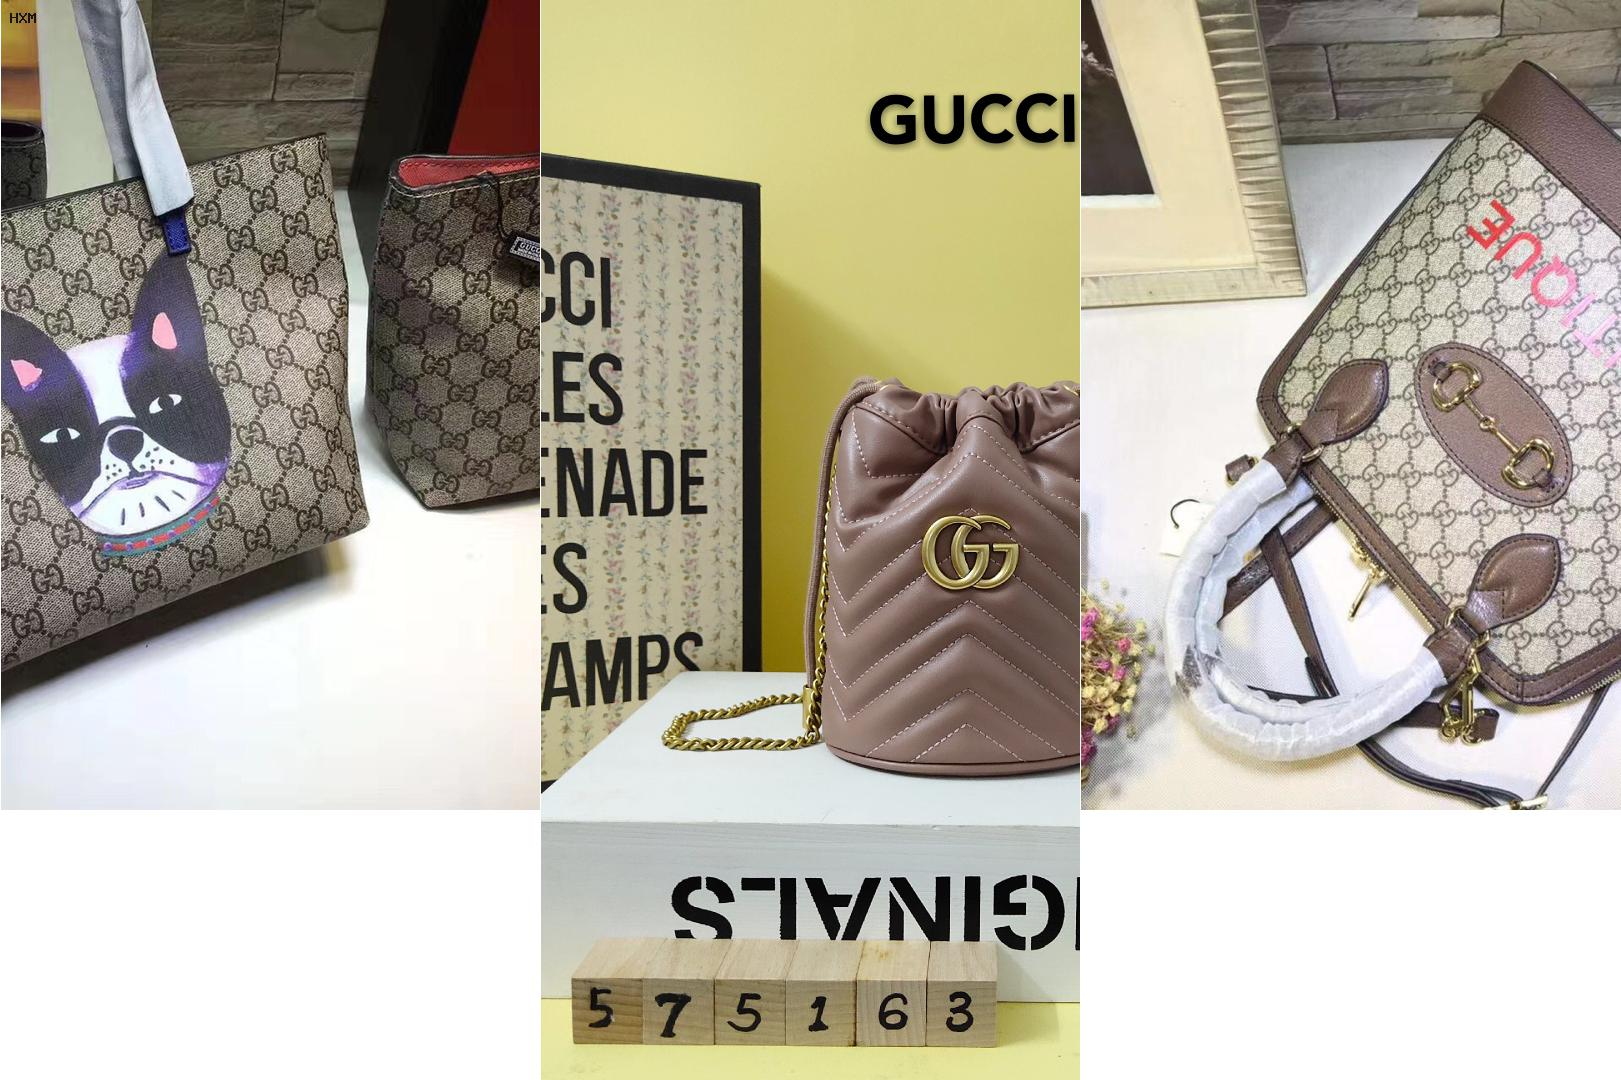 tracolla uomo gucci outlet